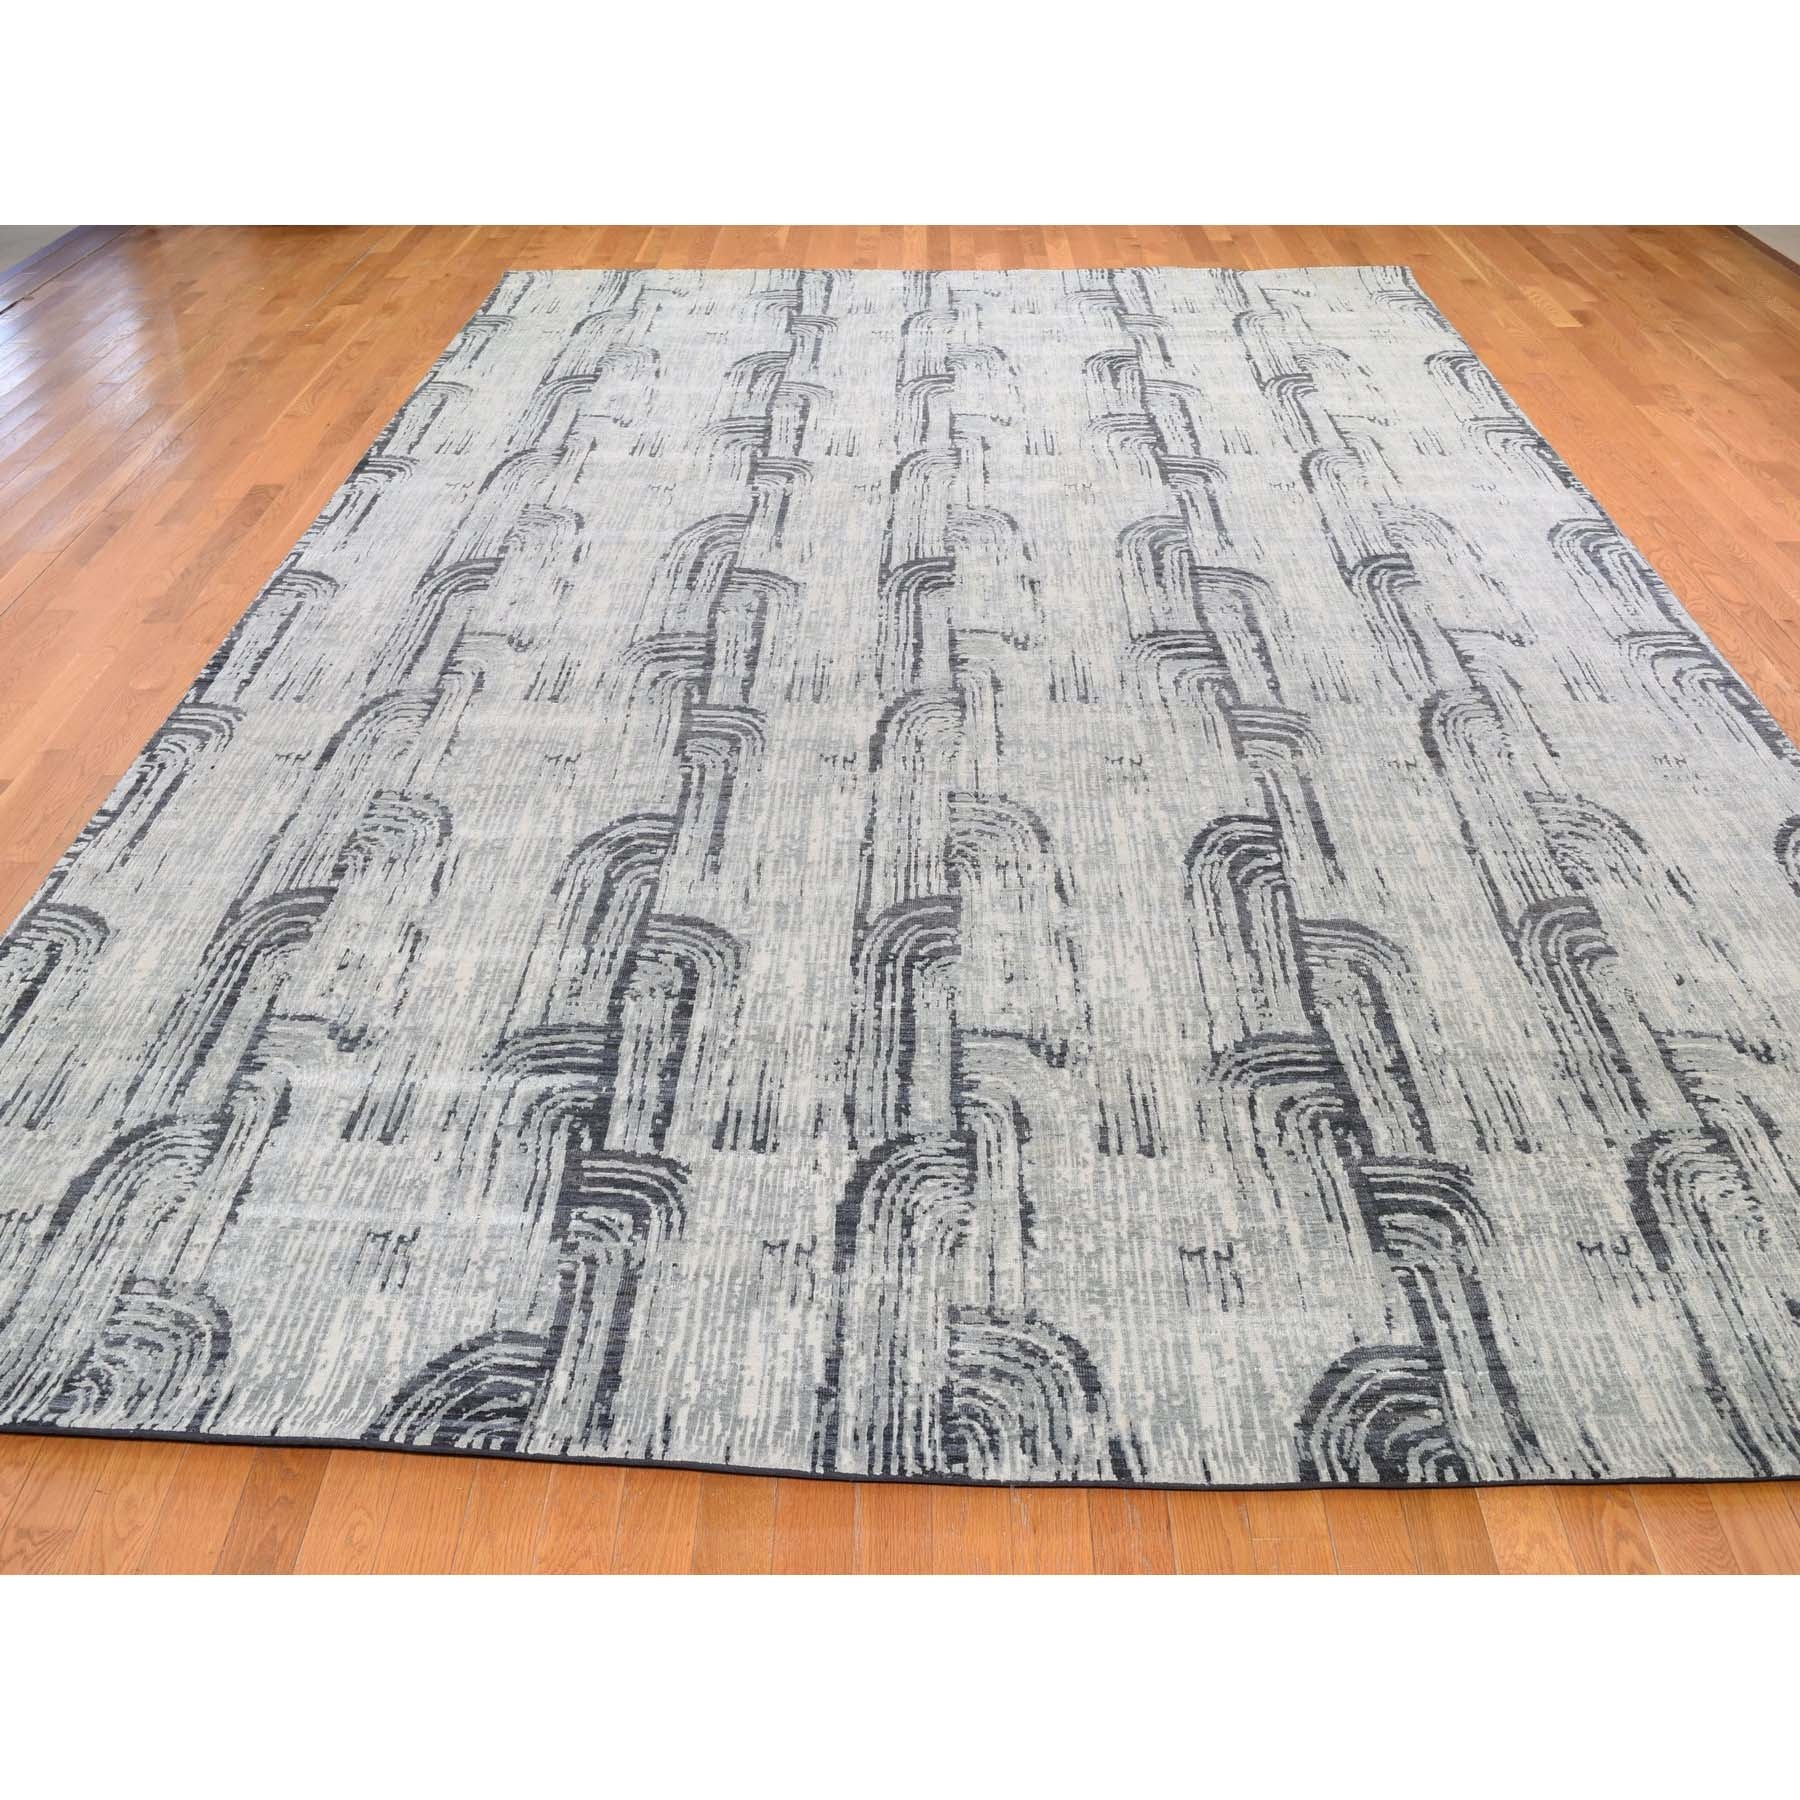 10-x14-5  THE CANE, Pure Silk With Textured Wool Hand-Knotted Oriental Rug